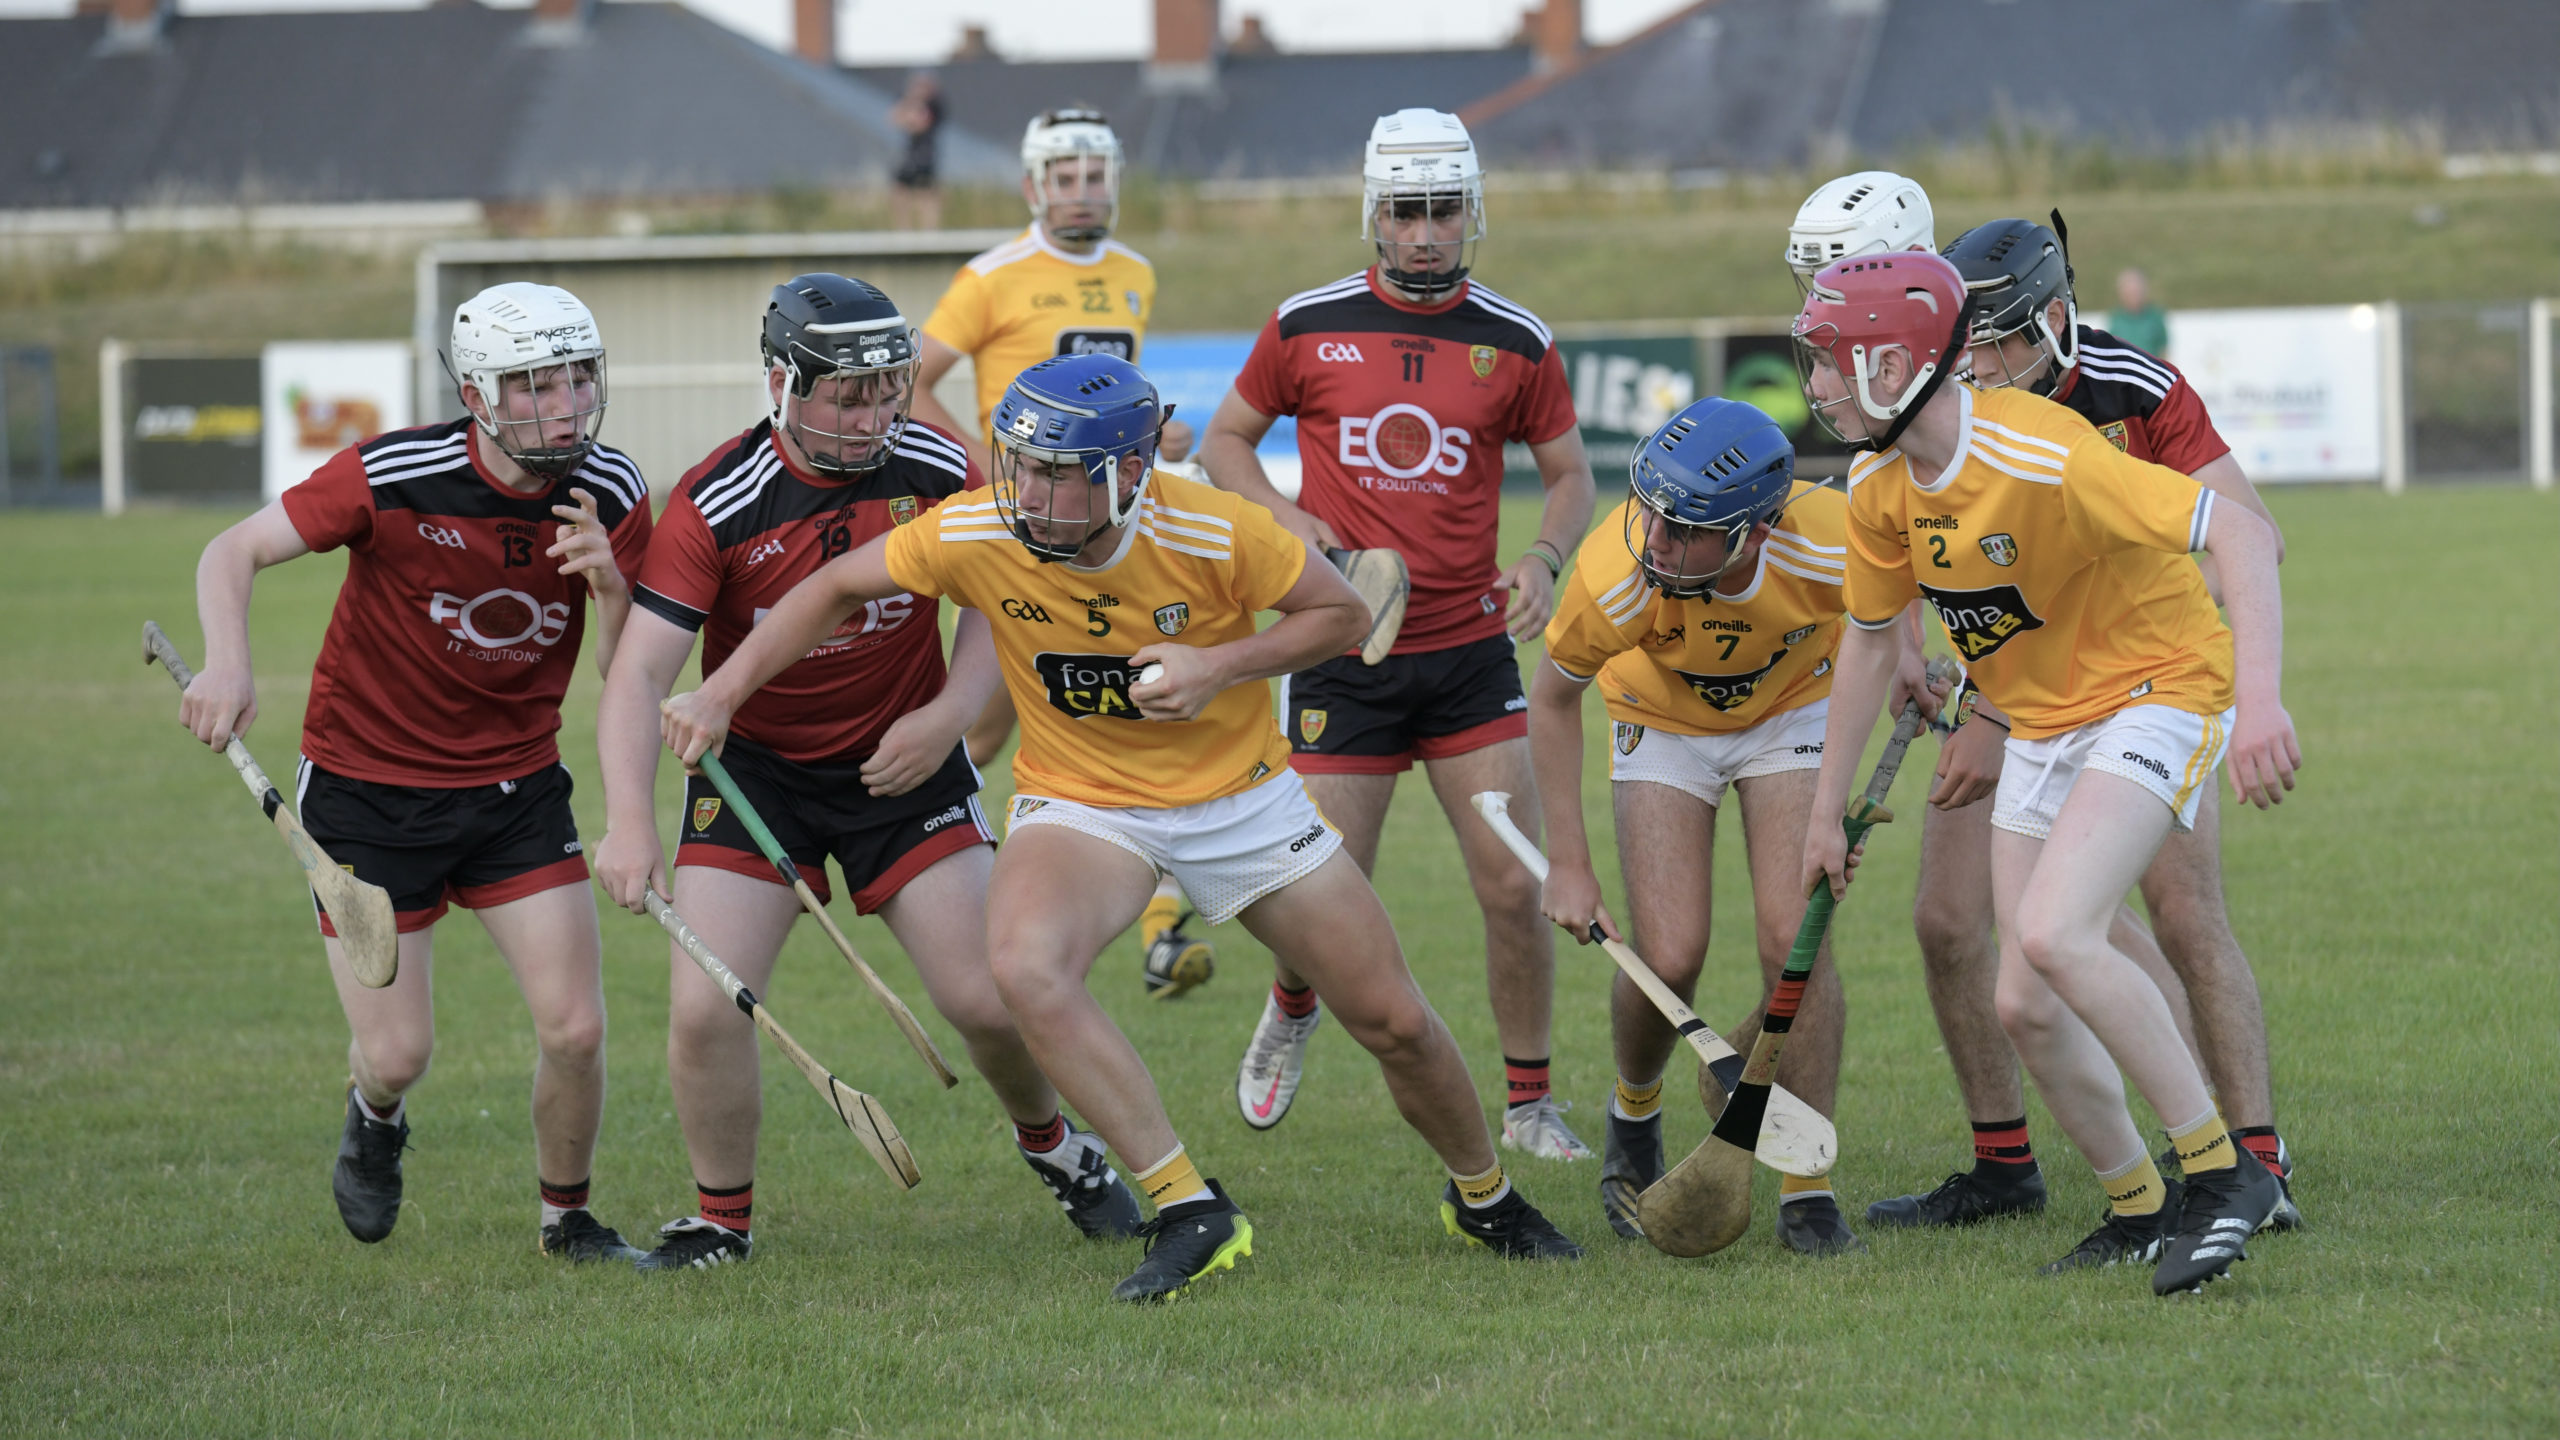 Antrim's hurling train lift the Peader Ó Liatháin Cup as Down worked hard to 'mind the gap'